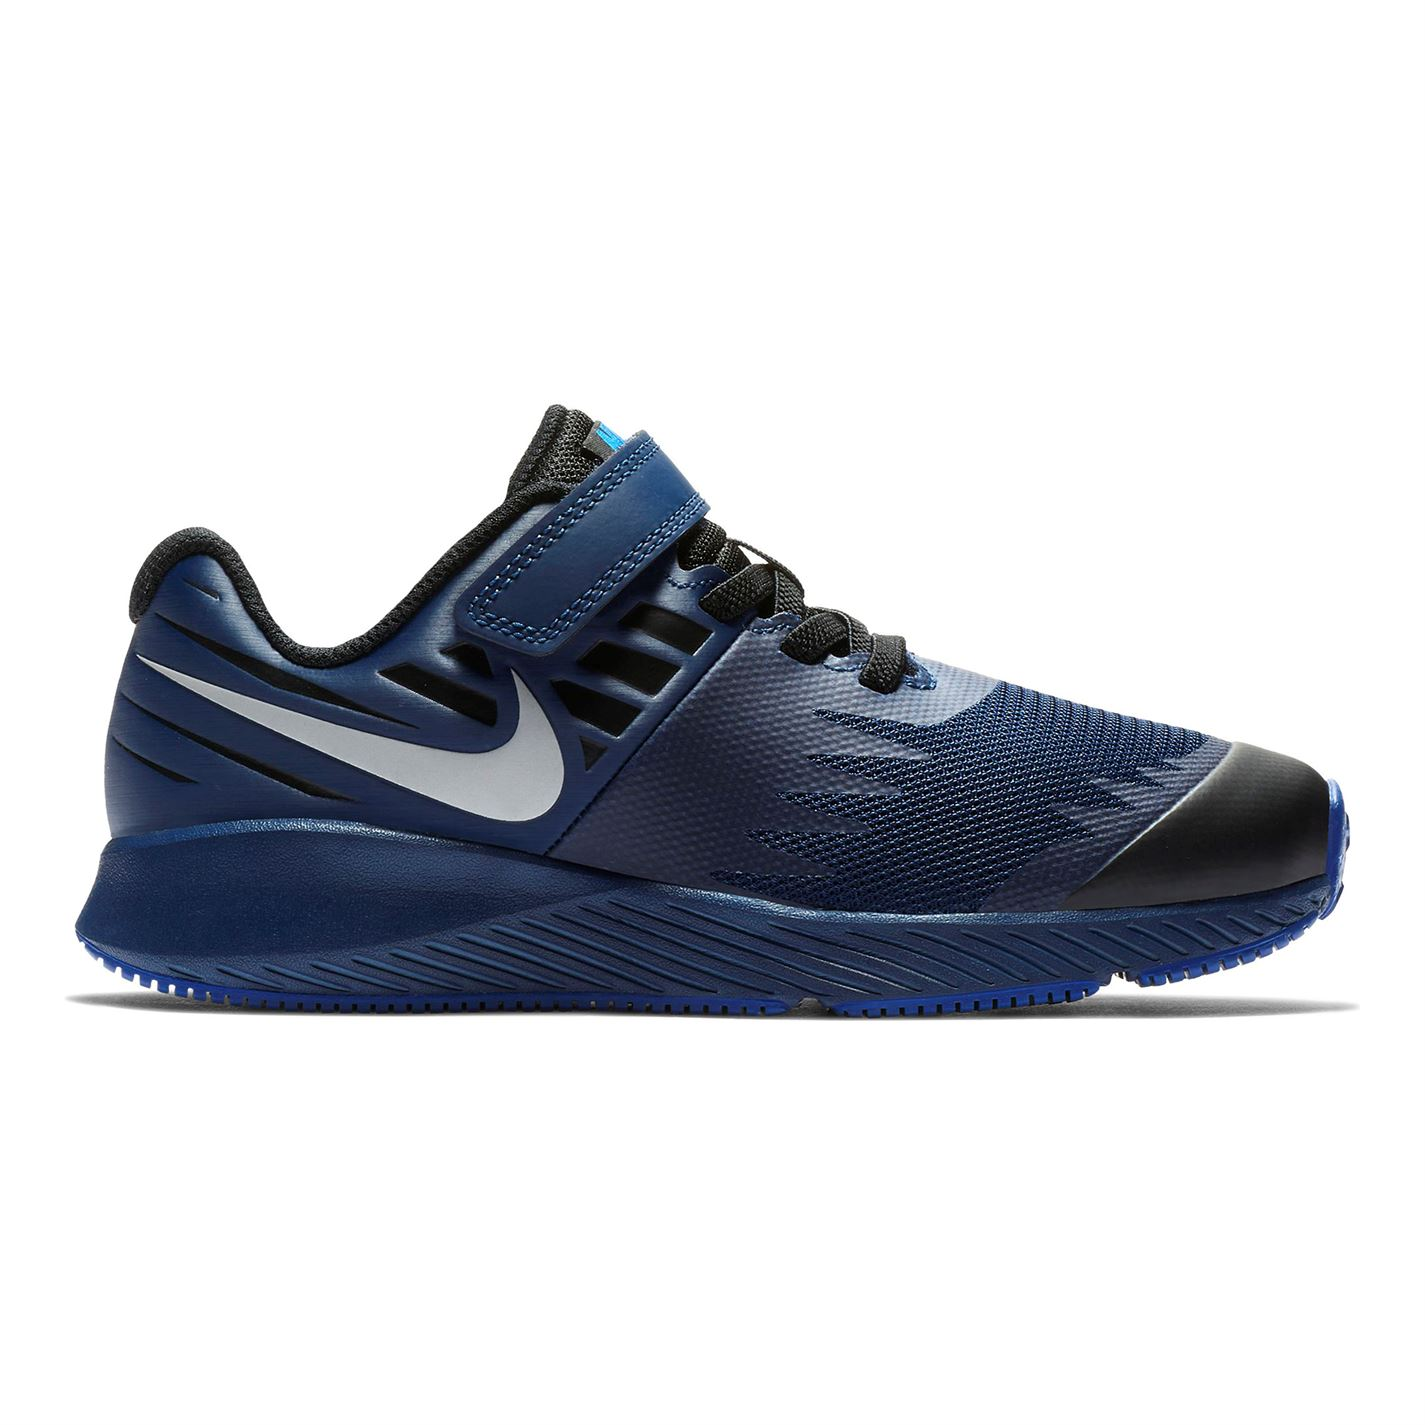 new styles b1be7 e4abd Tenisice Nike Star Runners Childrens Trainers. 1